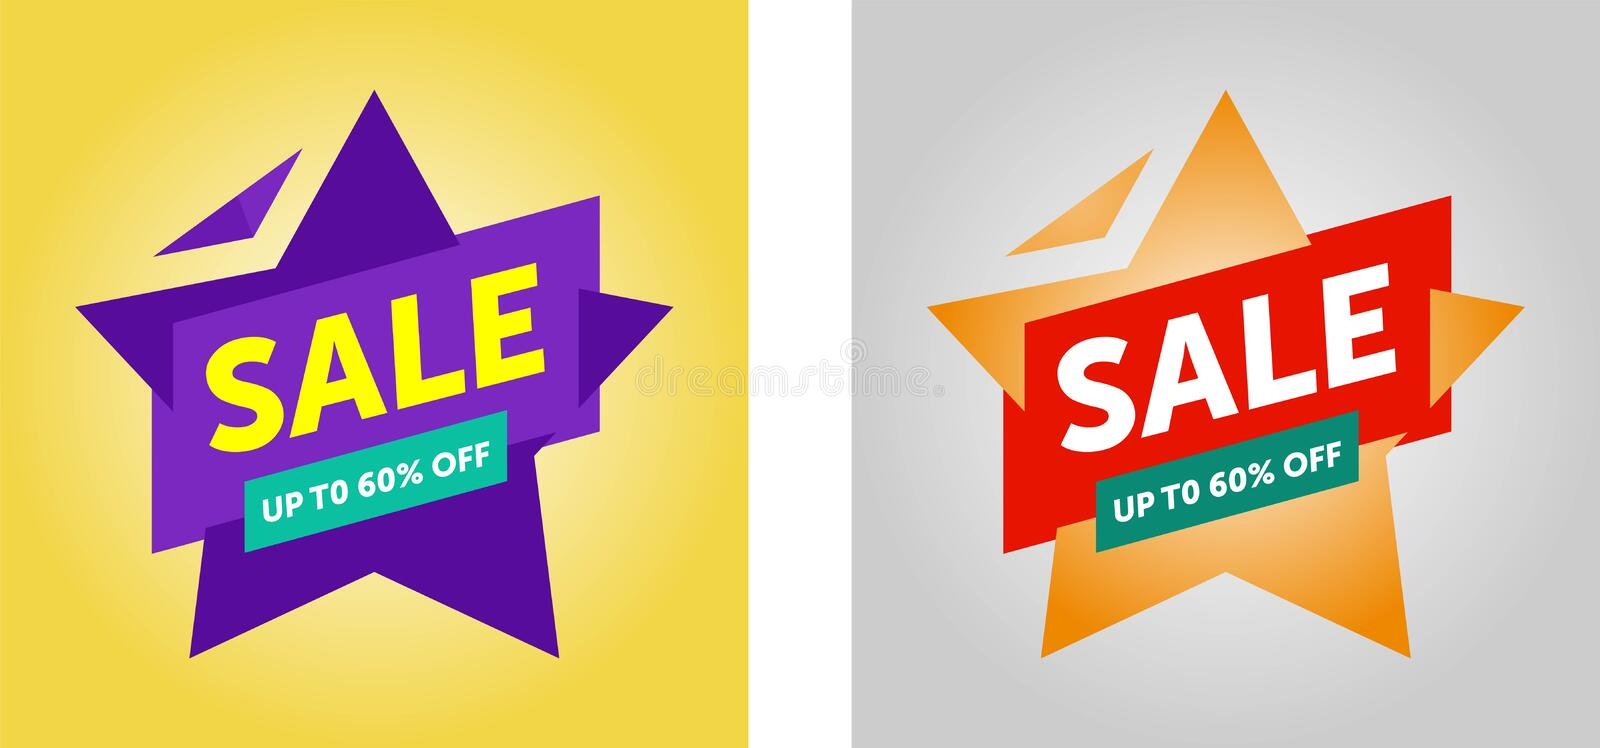 Sale banner template design. vector stock illustration